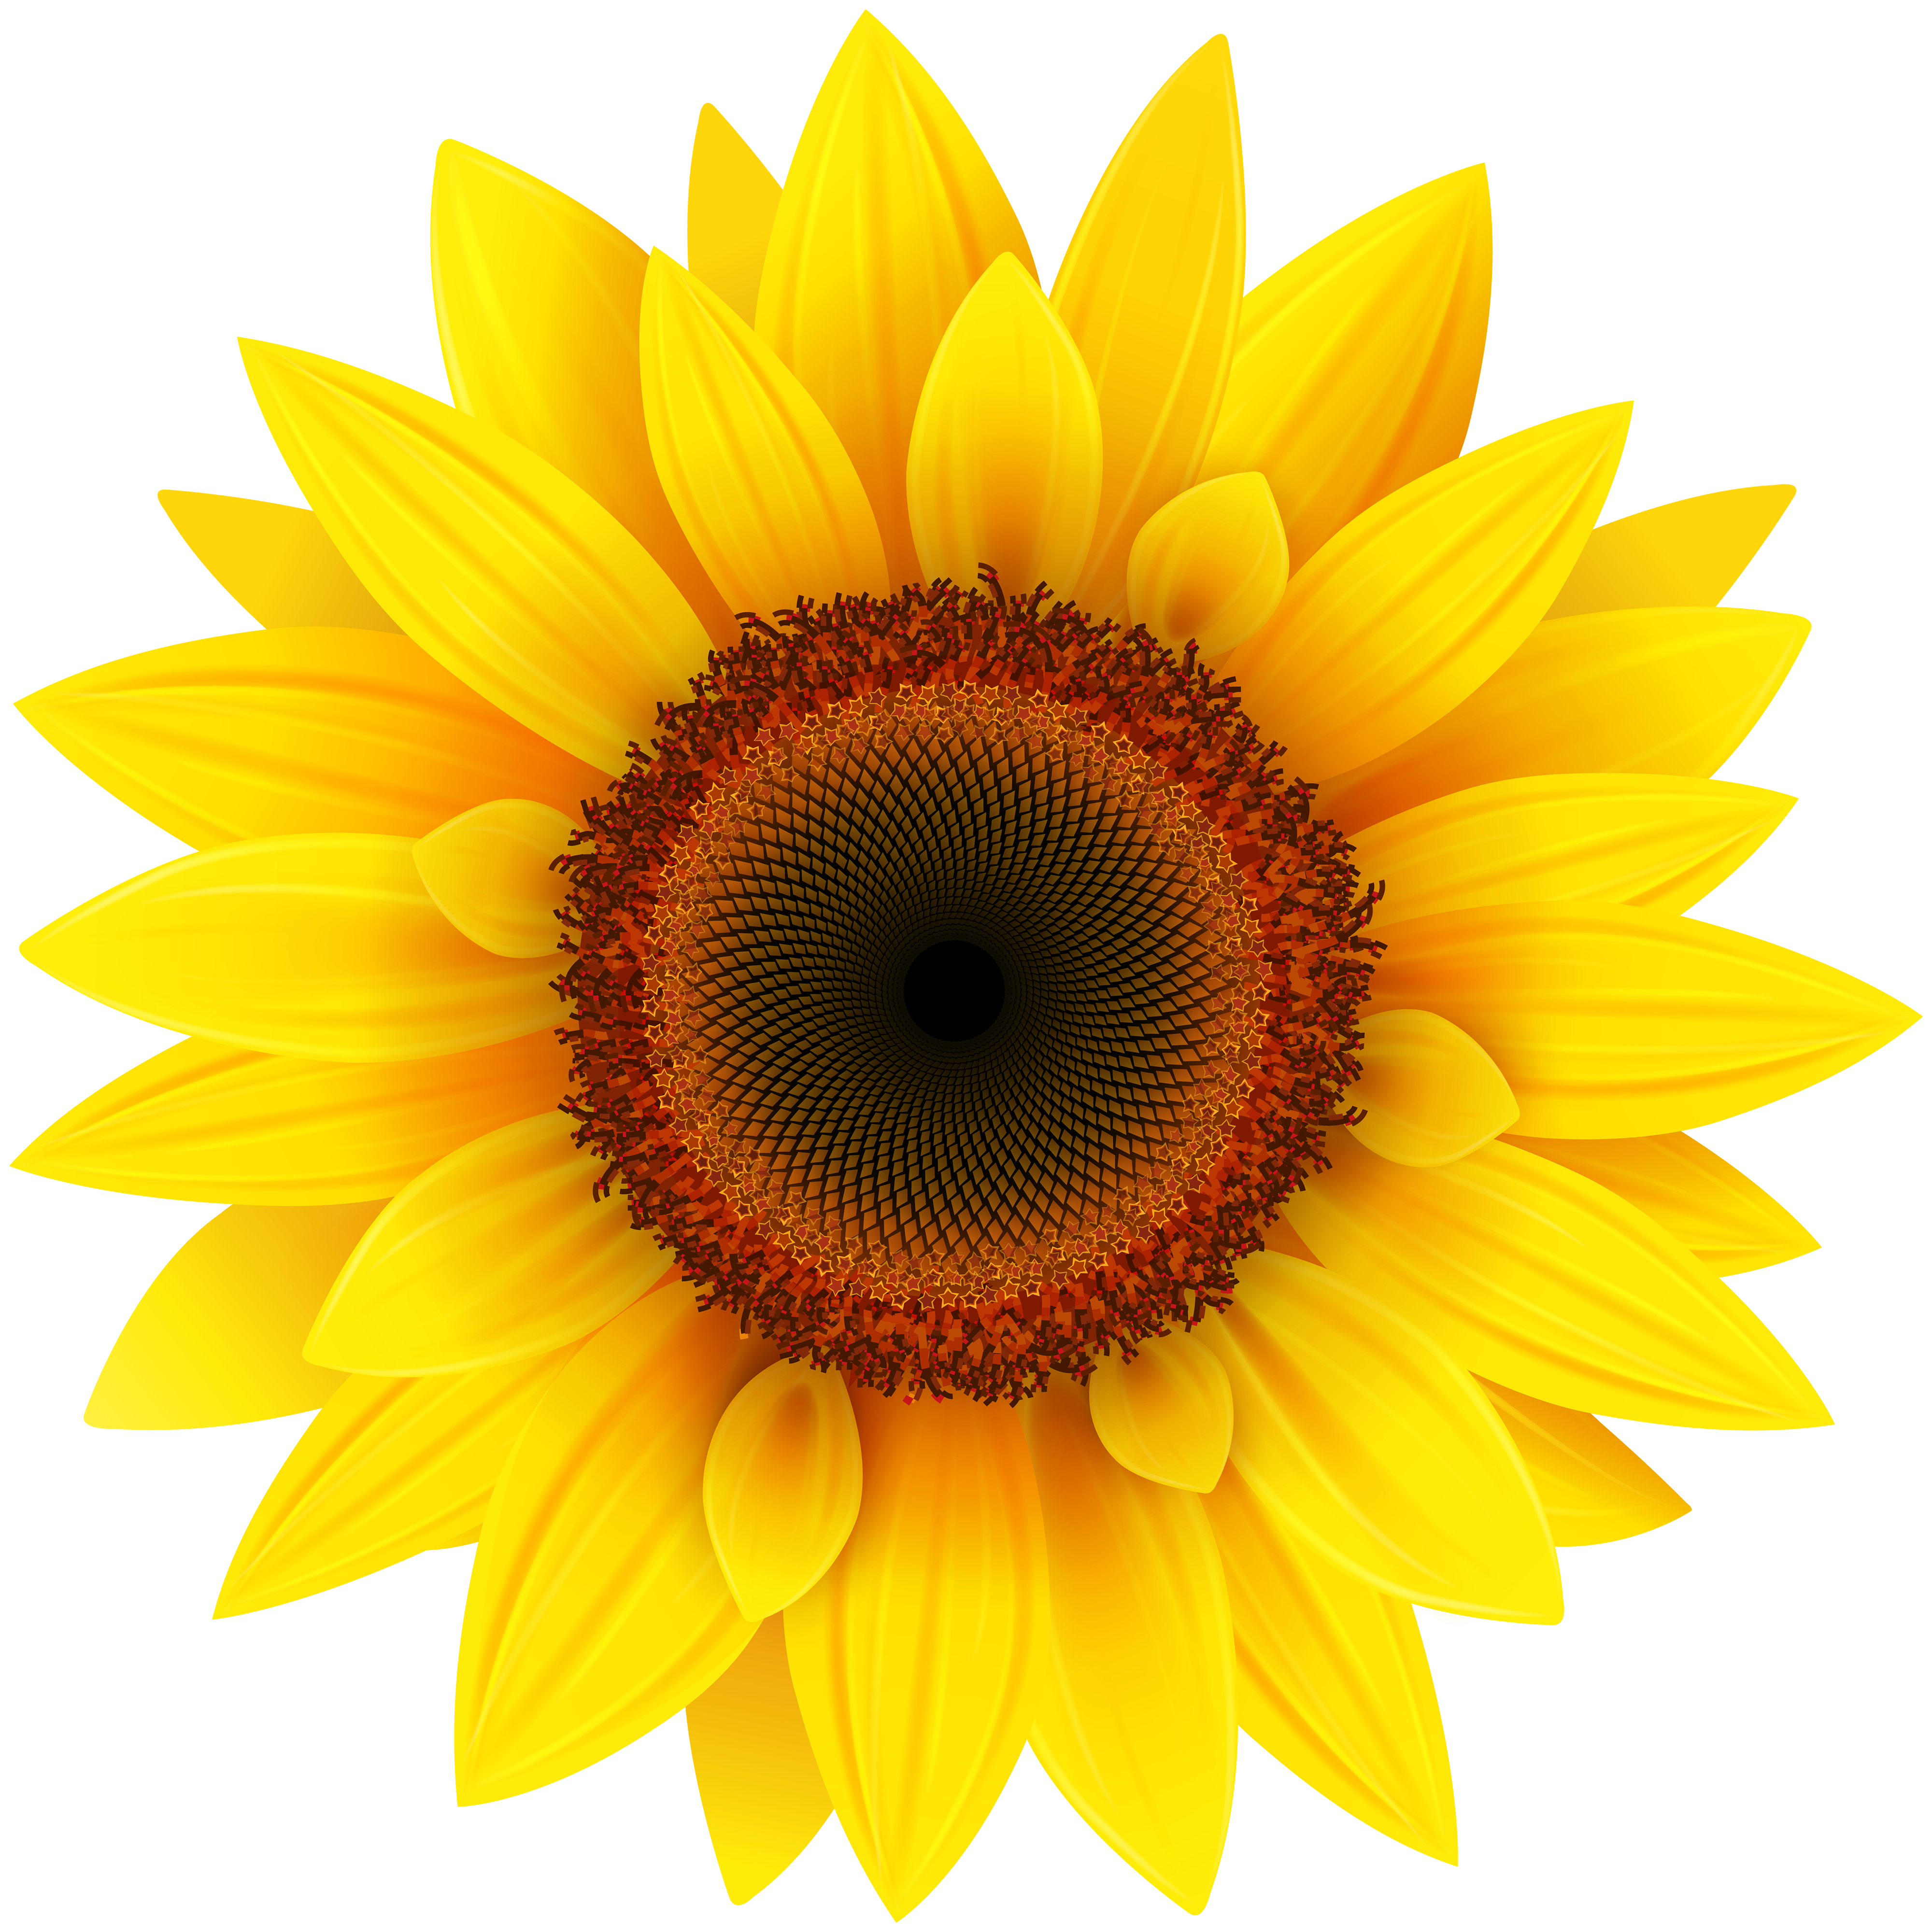 Sunflowers PNG - 6591